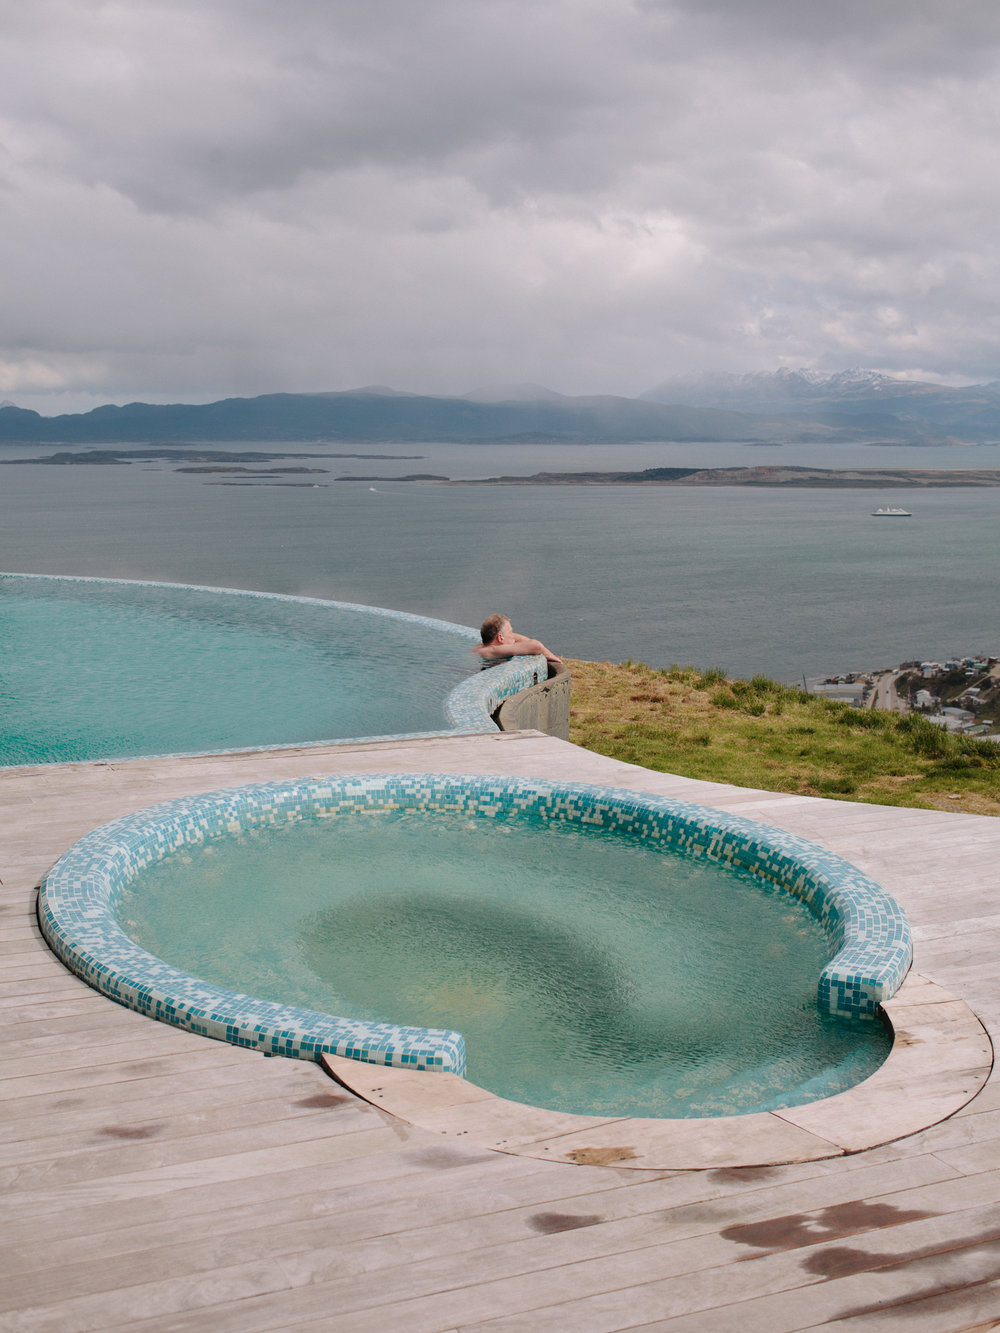 The external heated pool of 'Arakur' hotel overlooks the entire Beagle Channel. A standard double-room here costs around 500$ per night.